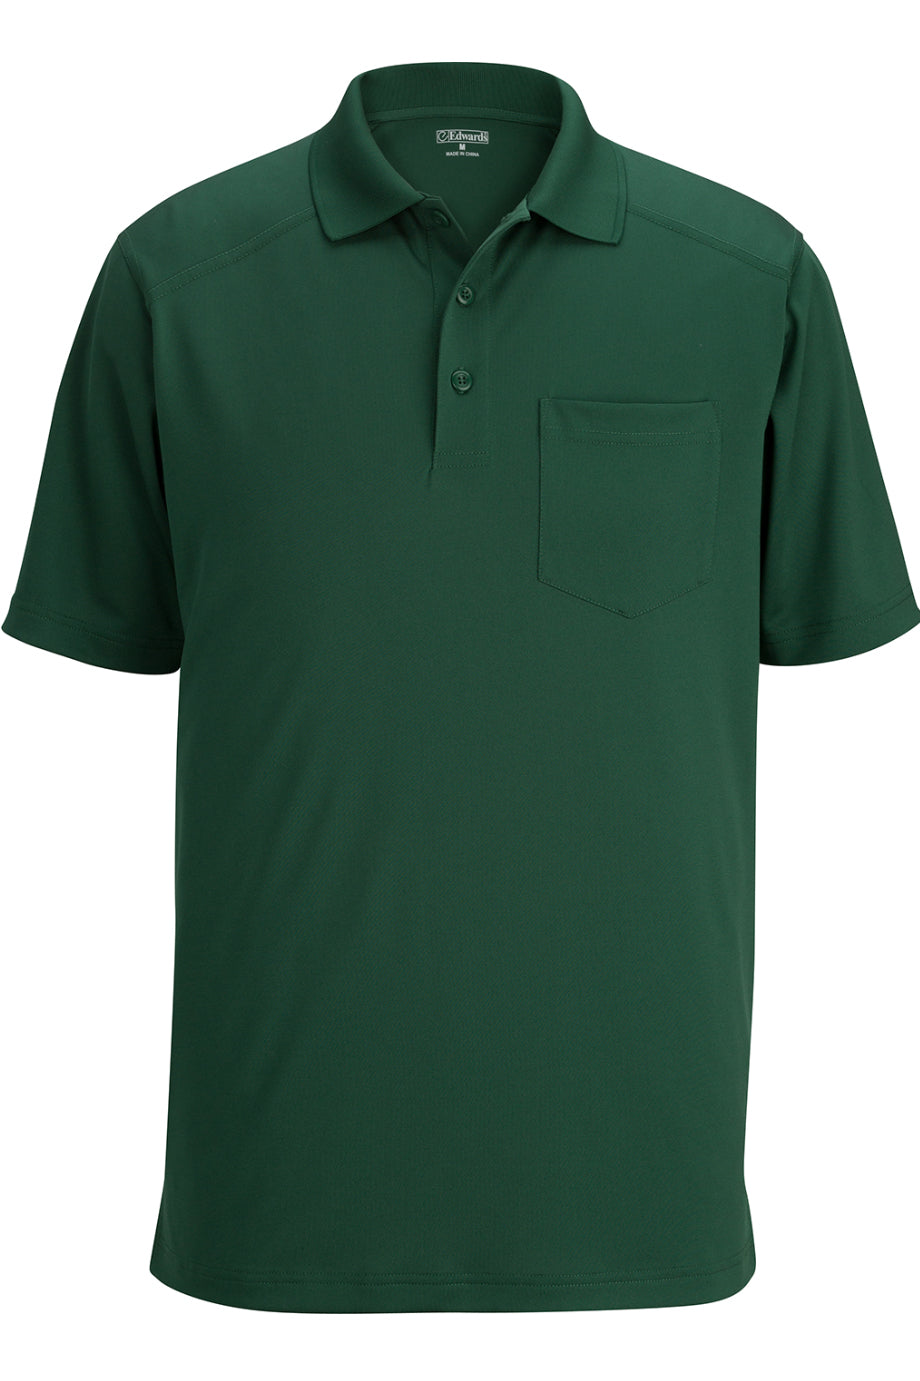 Fern Green Edwards Unisex Snag Proof Polo With Pockets